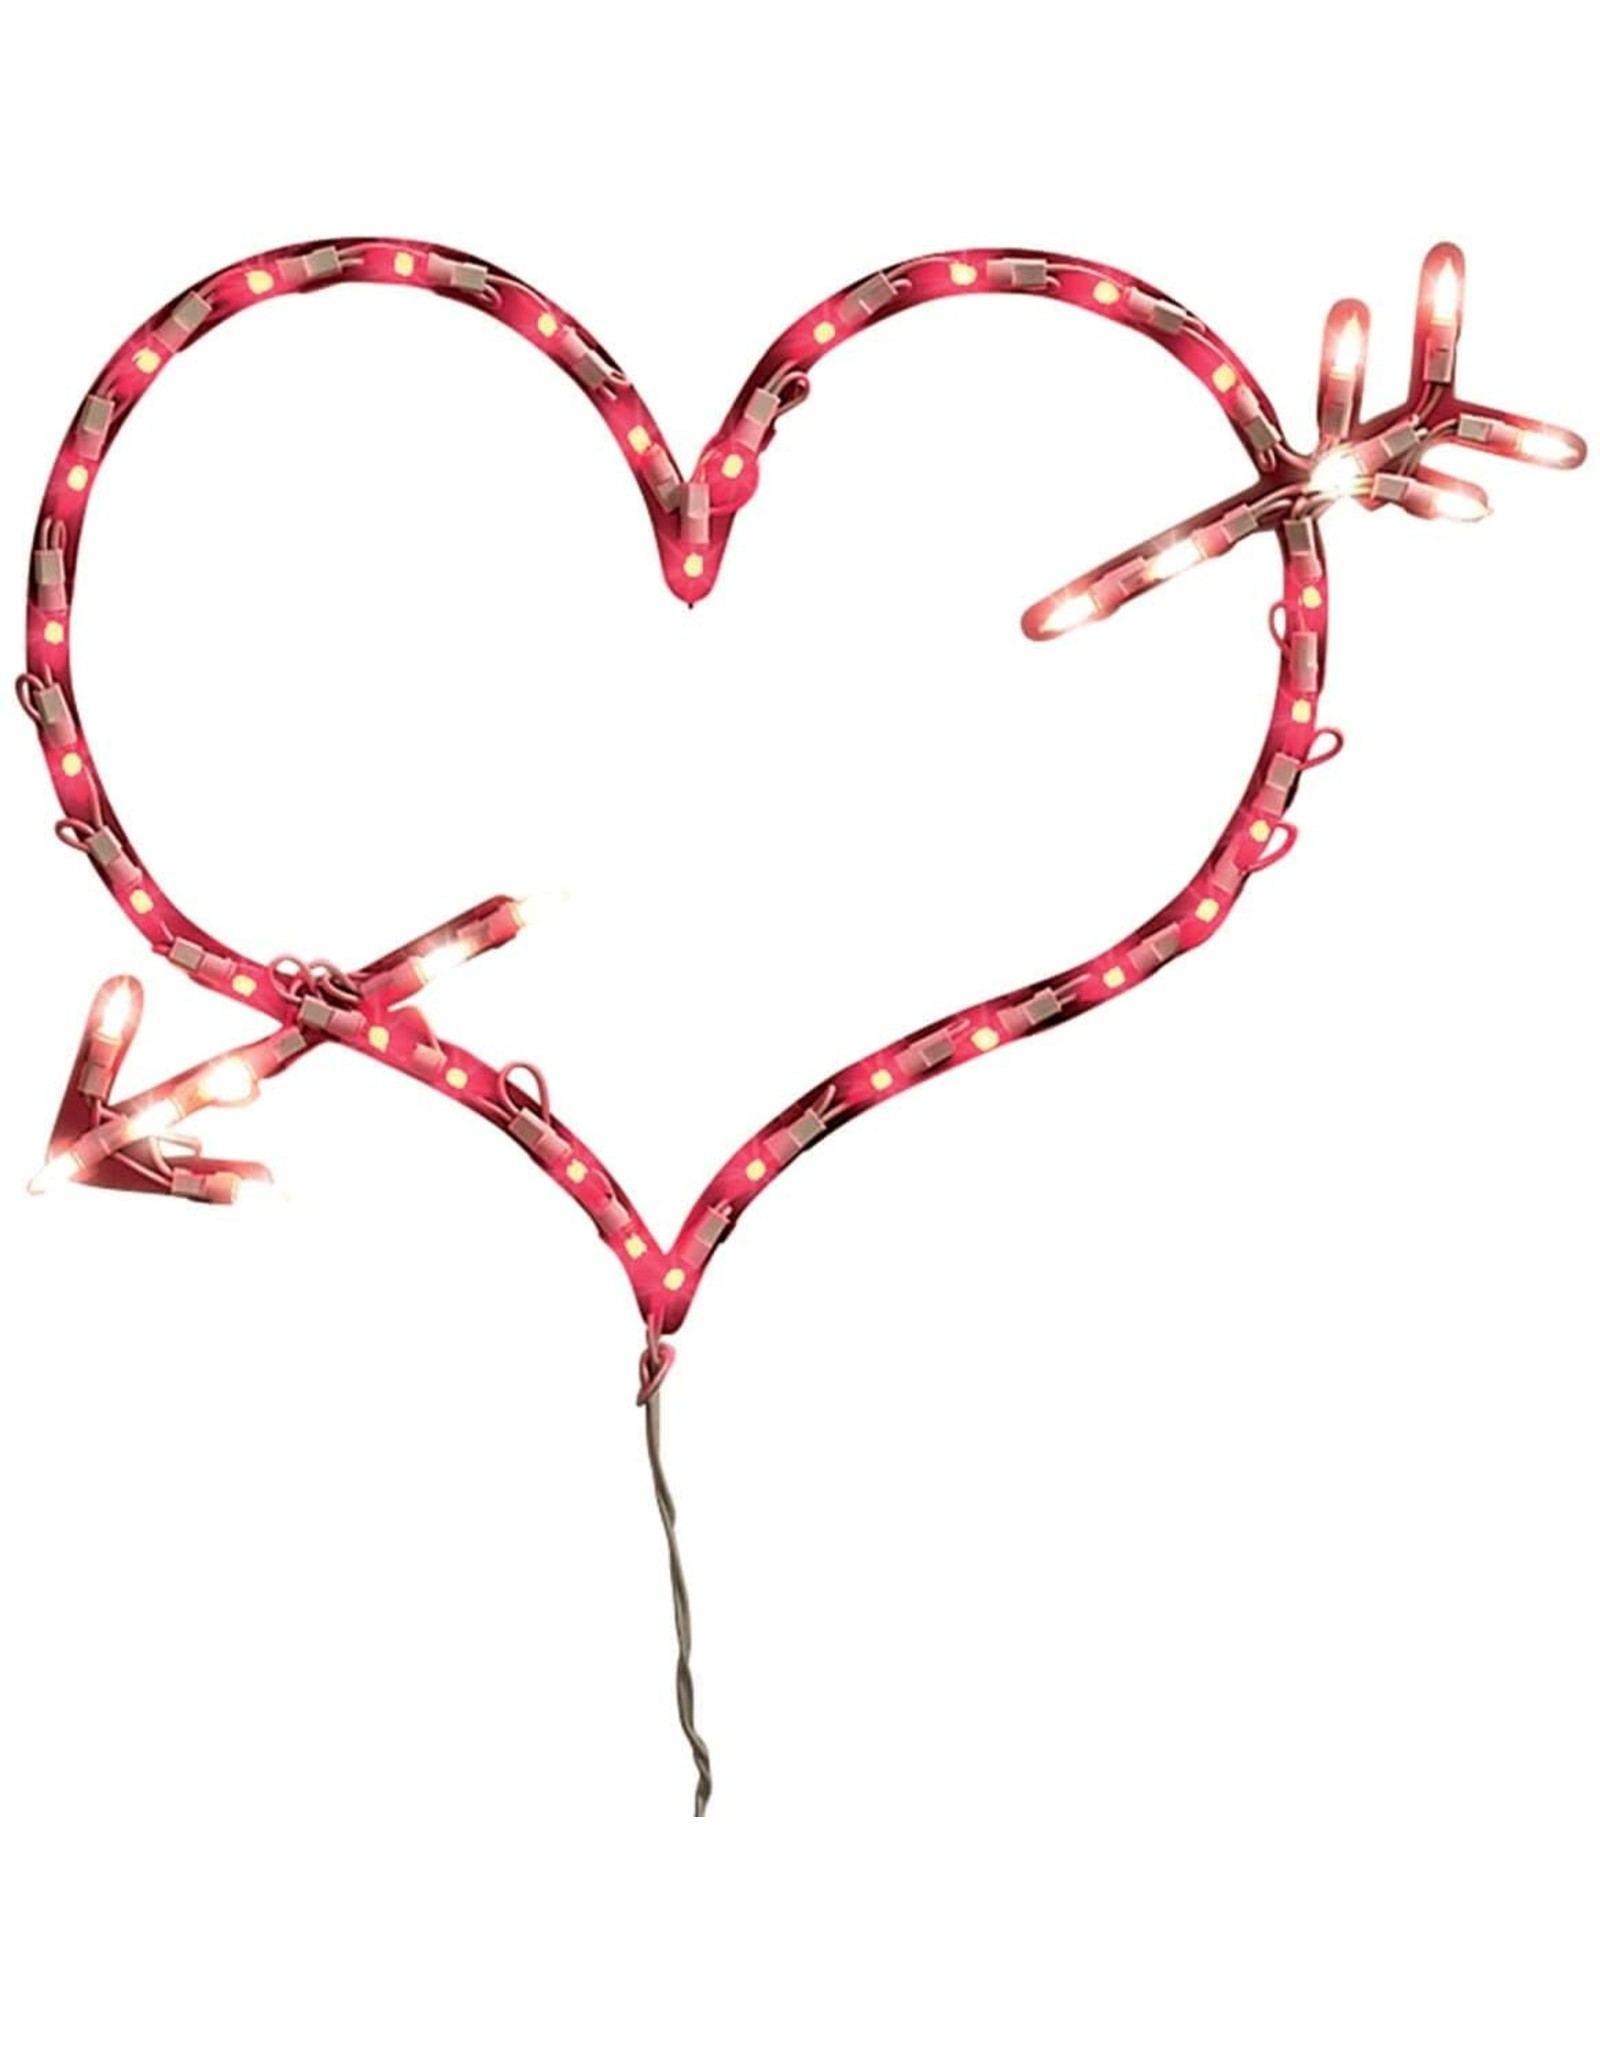 Design Group Light-Up Heart with Arrow Window Decoration